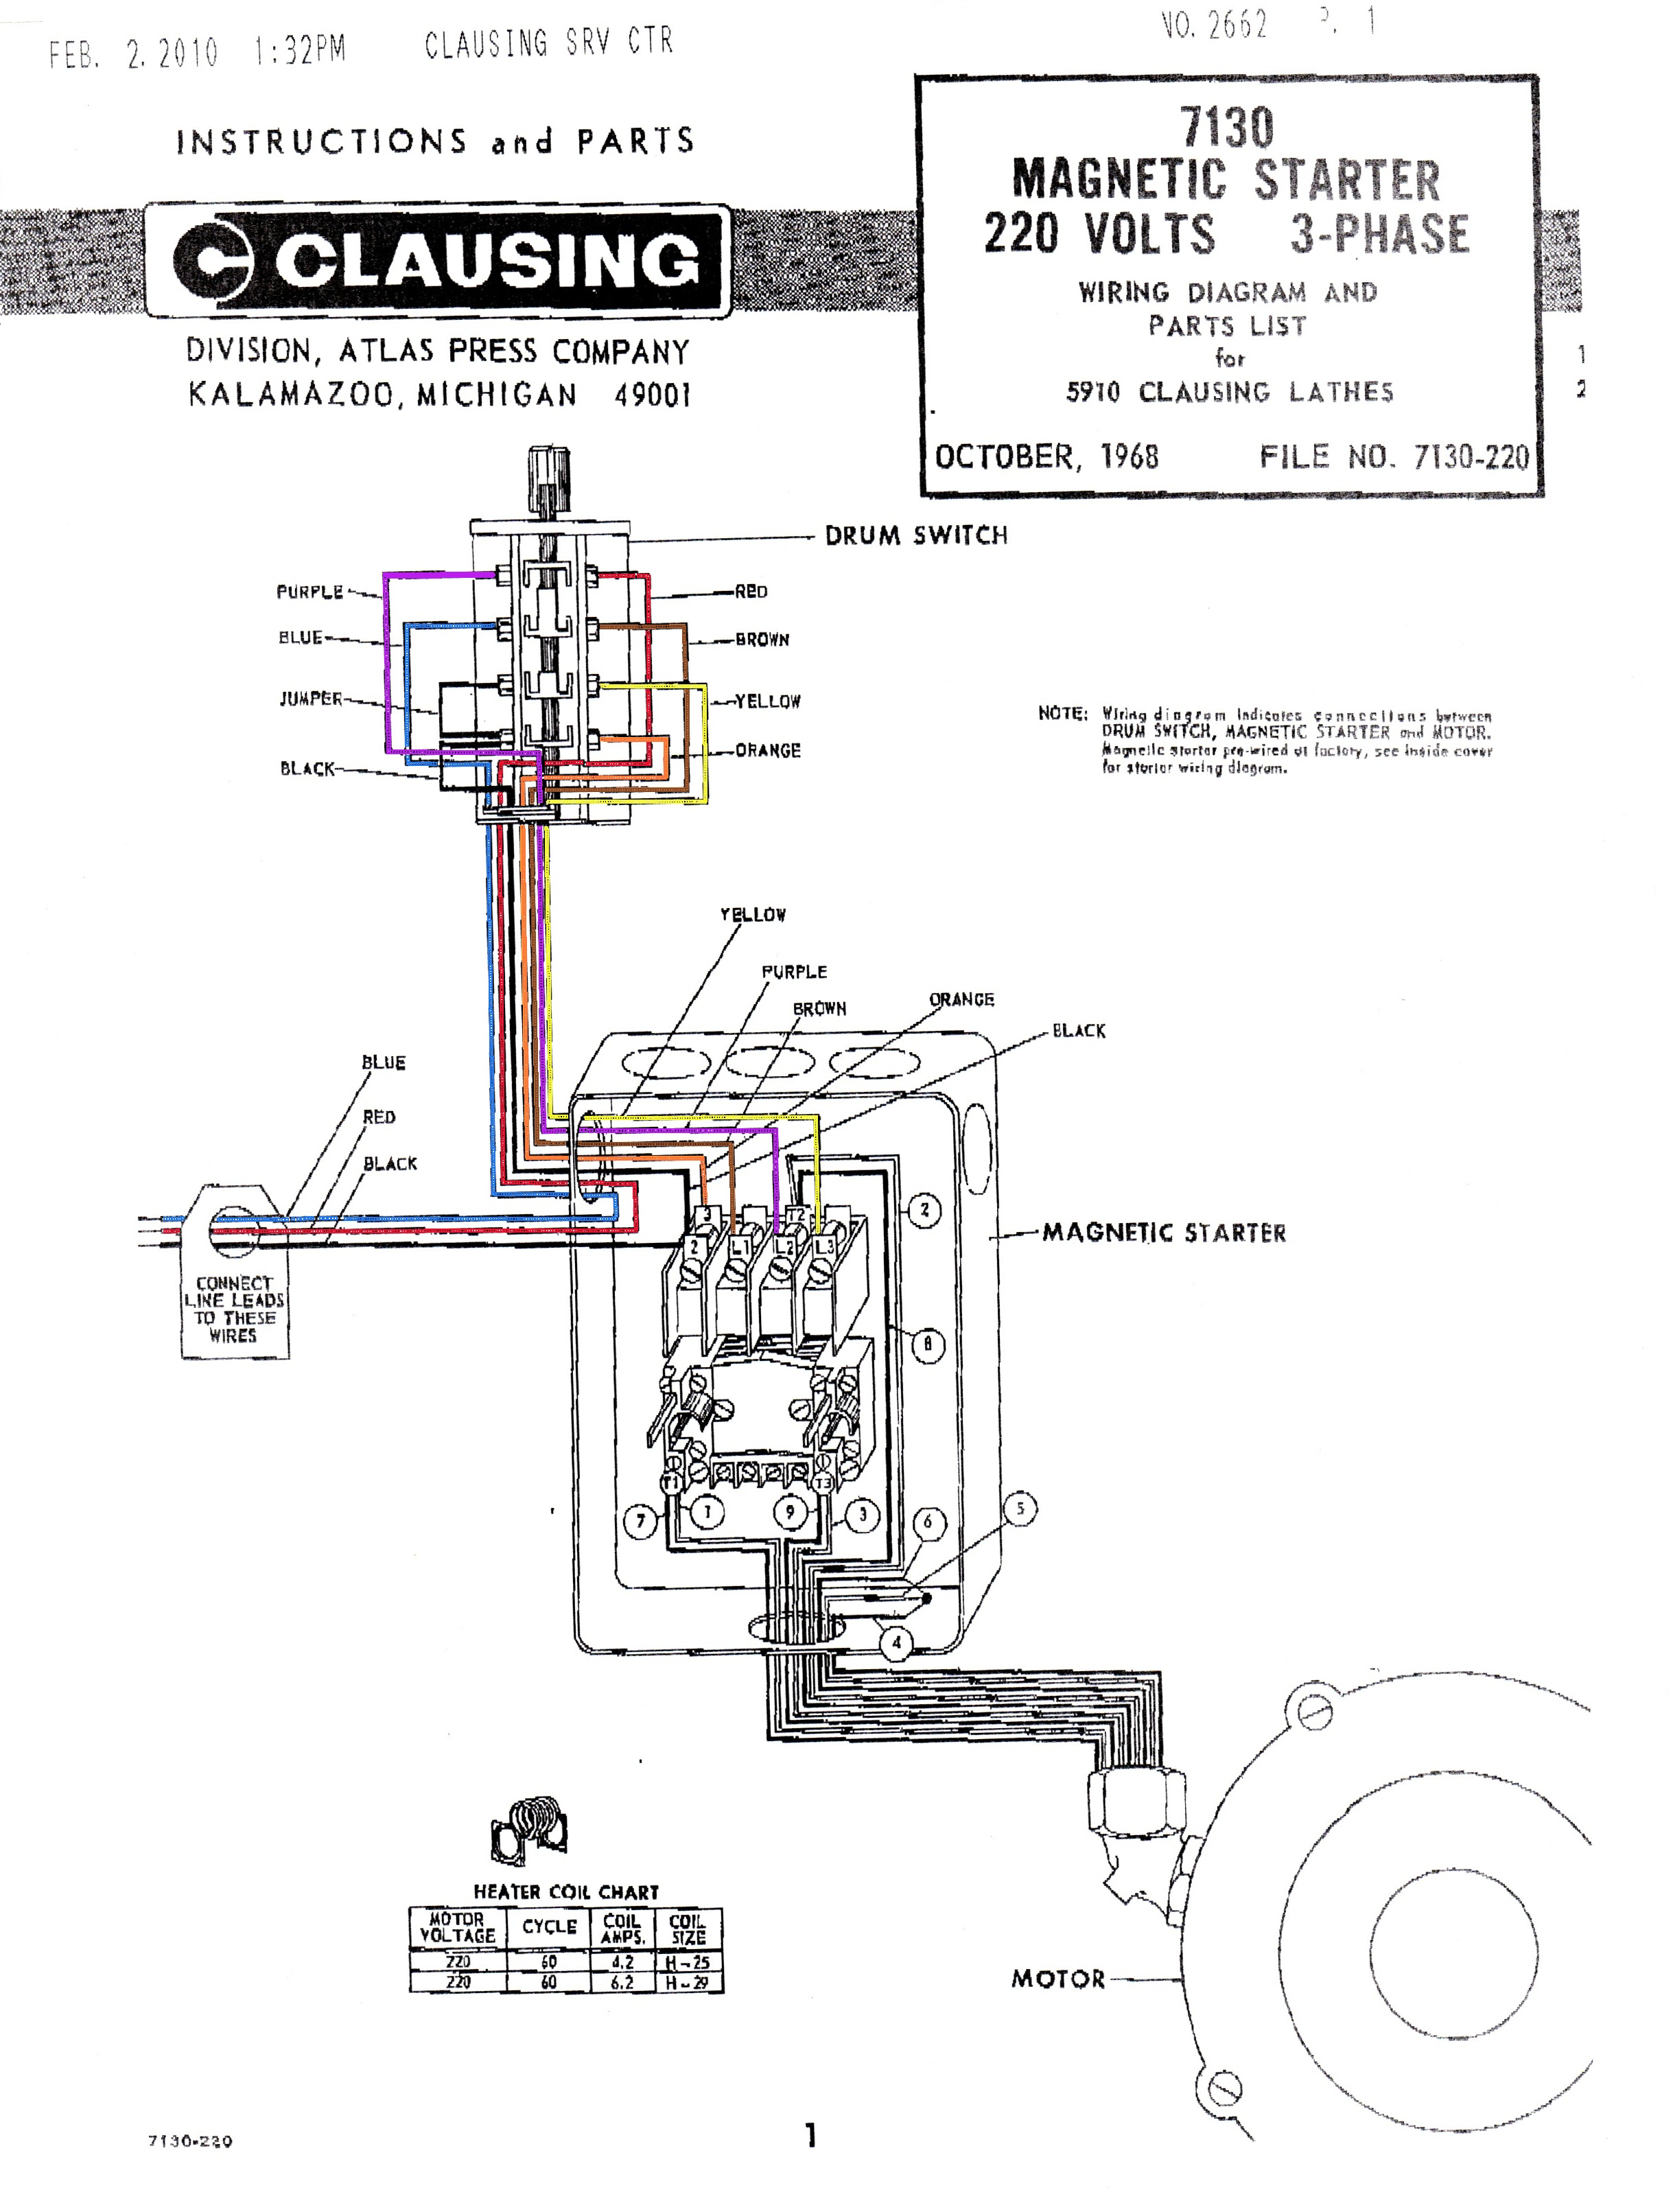 3 phase motor starter relay wiring diagram allen bradley 3 for 3 phase motor starter circuit